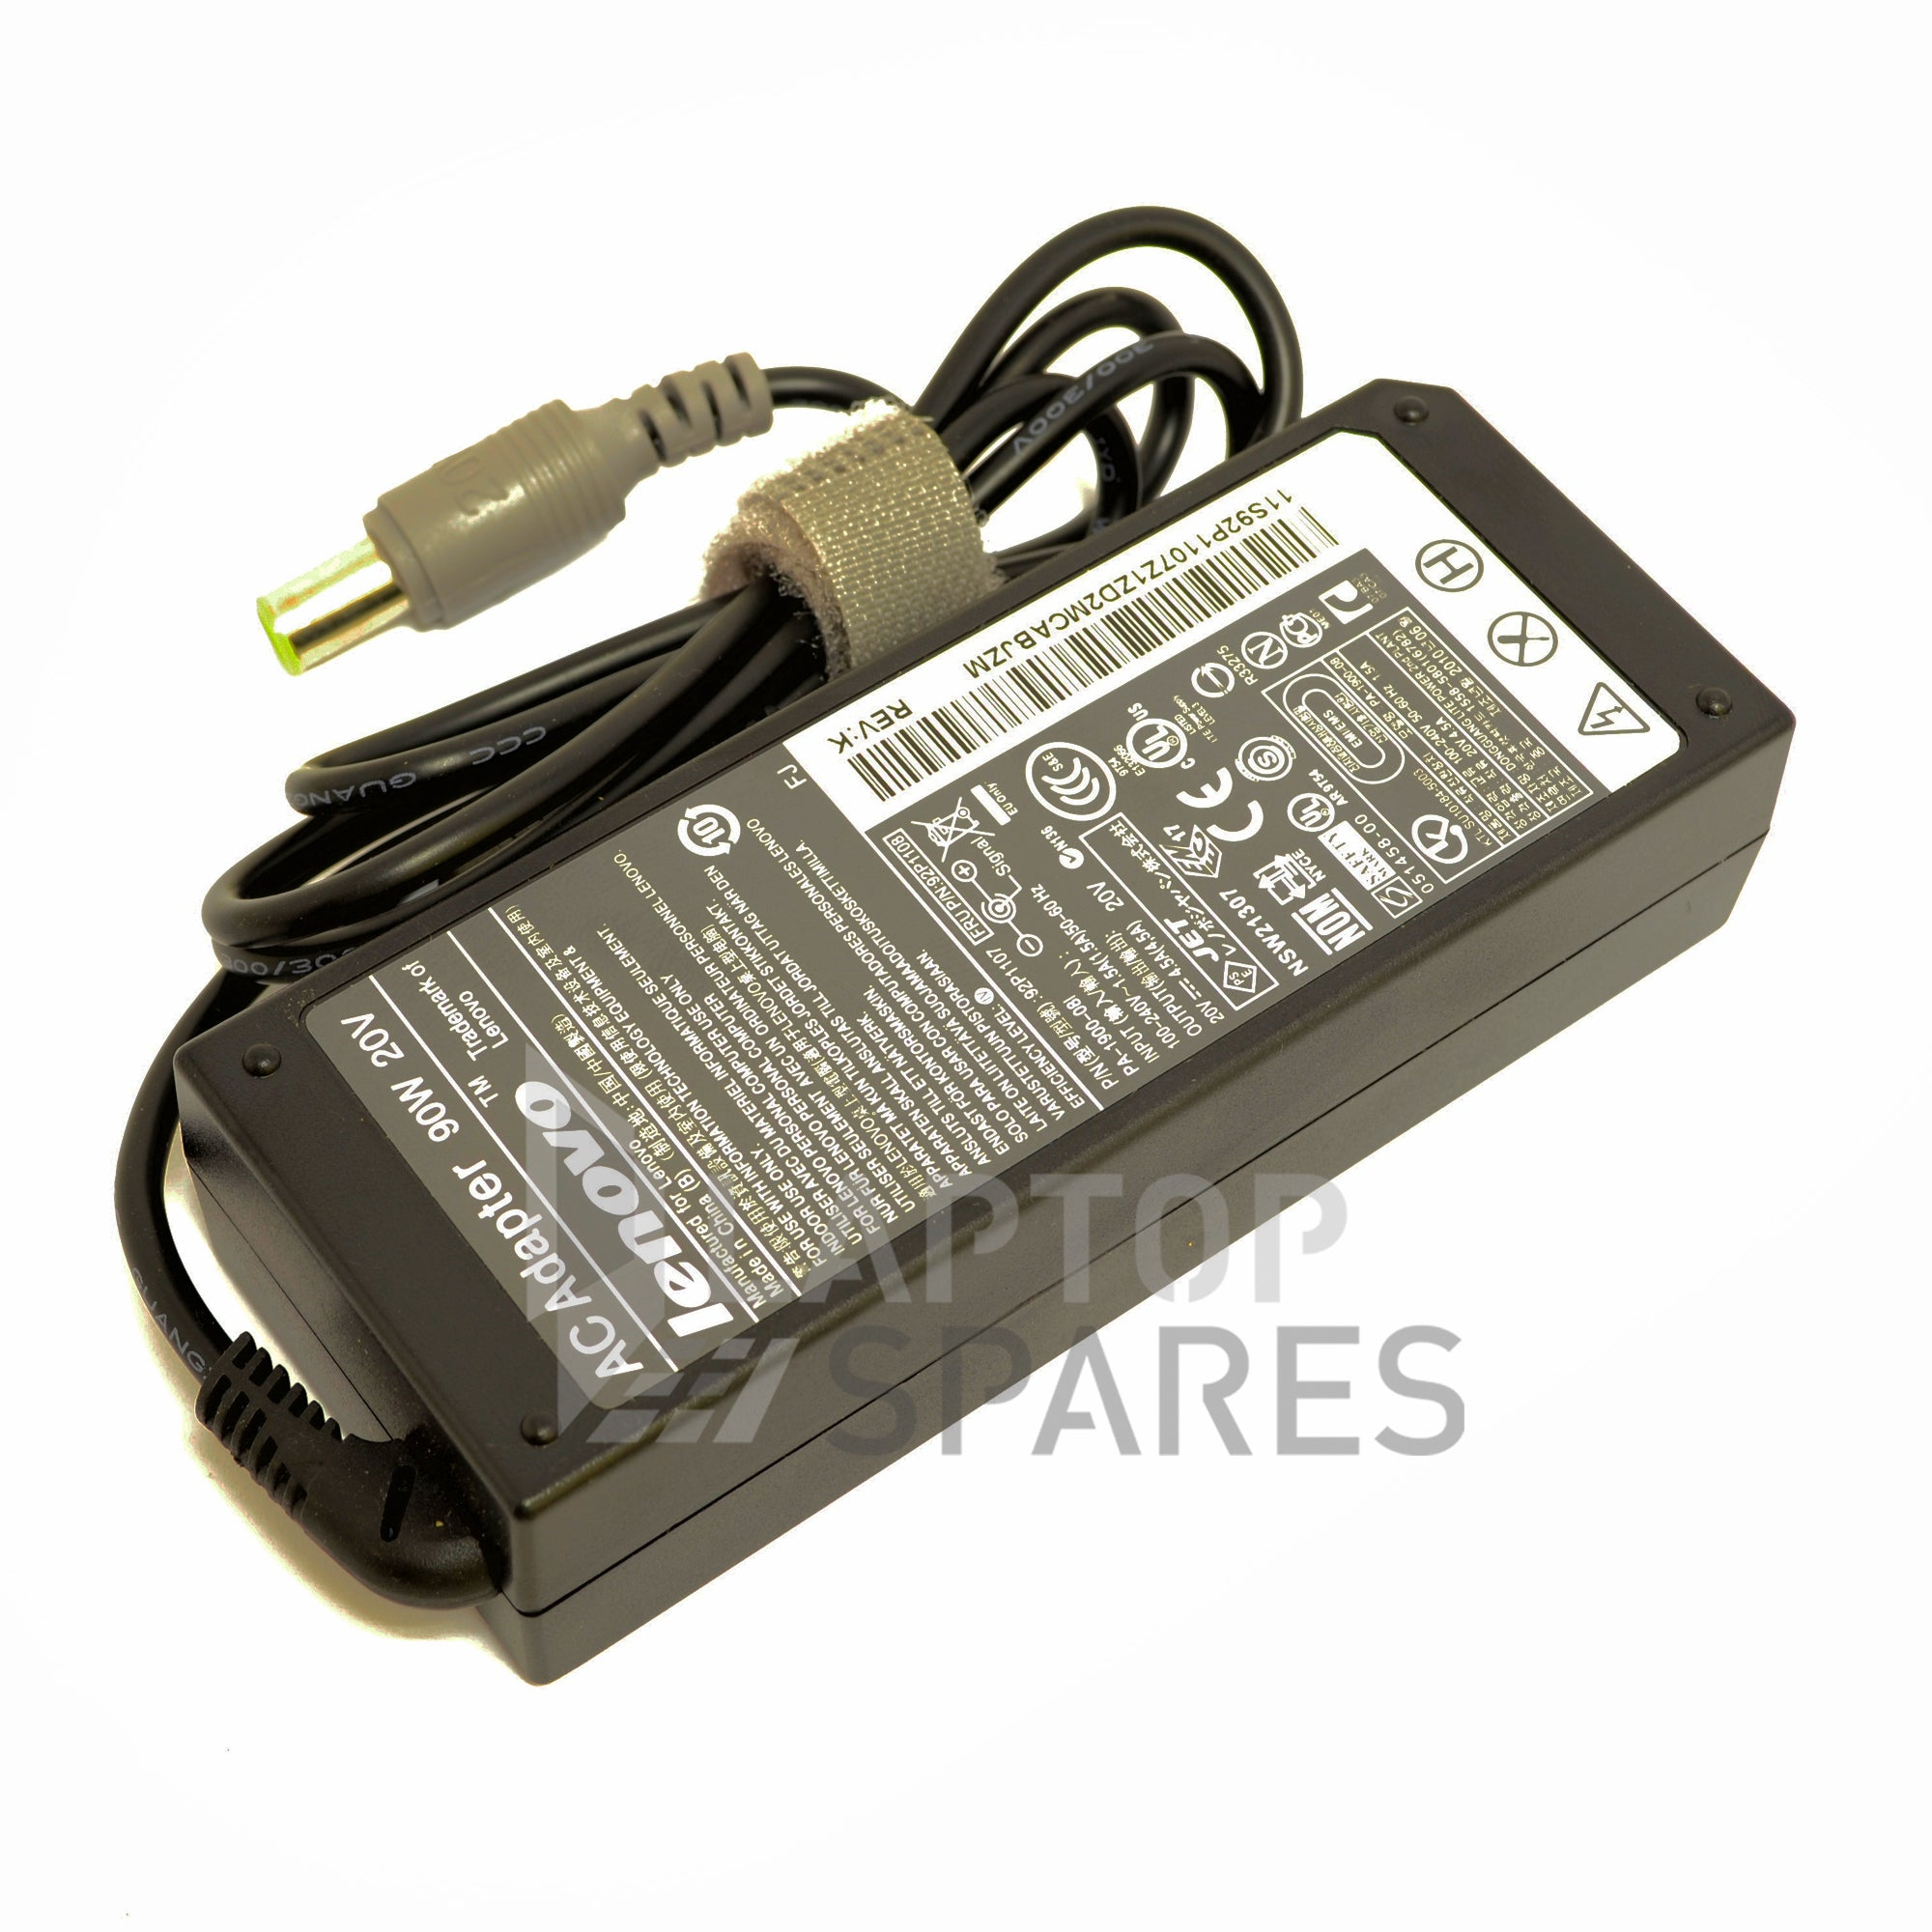 Lenovo ThinkPad T520 Laptop AC Adapter Charger